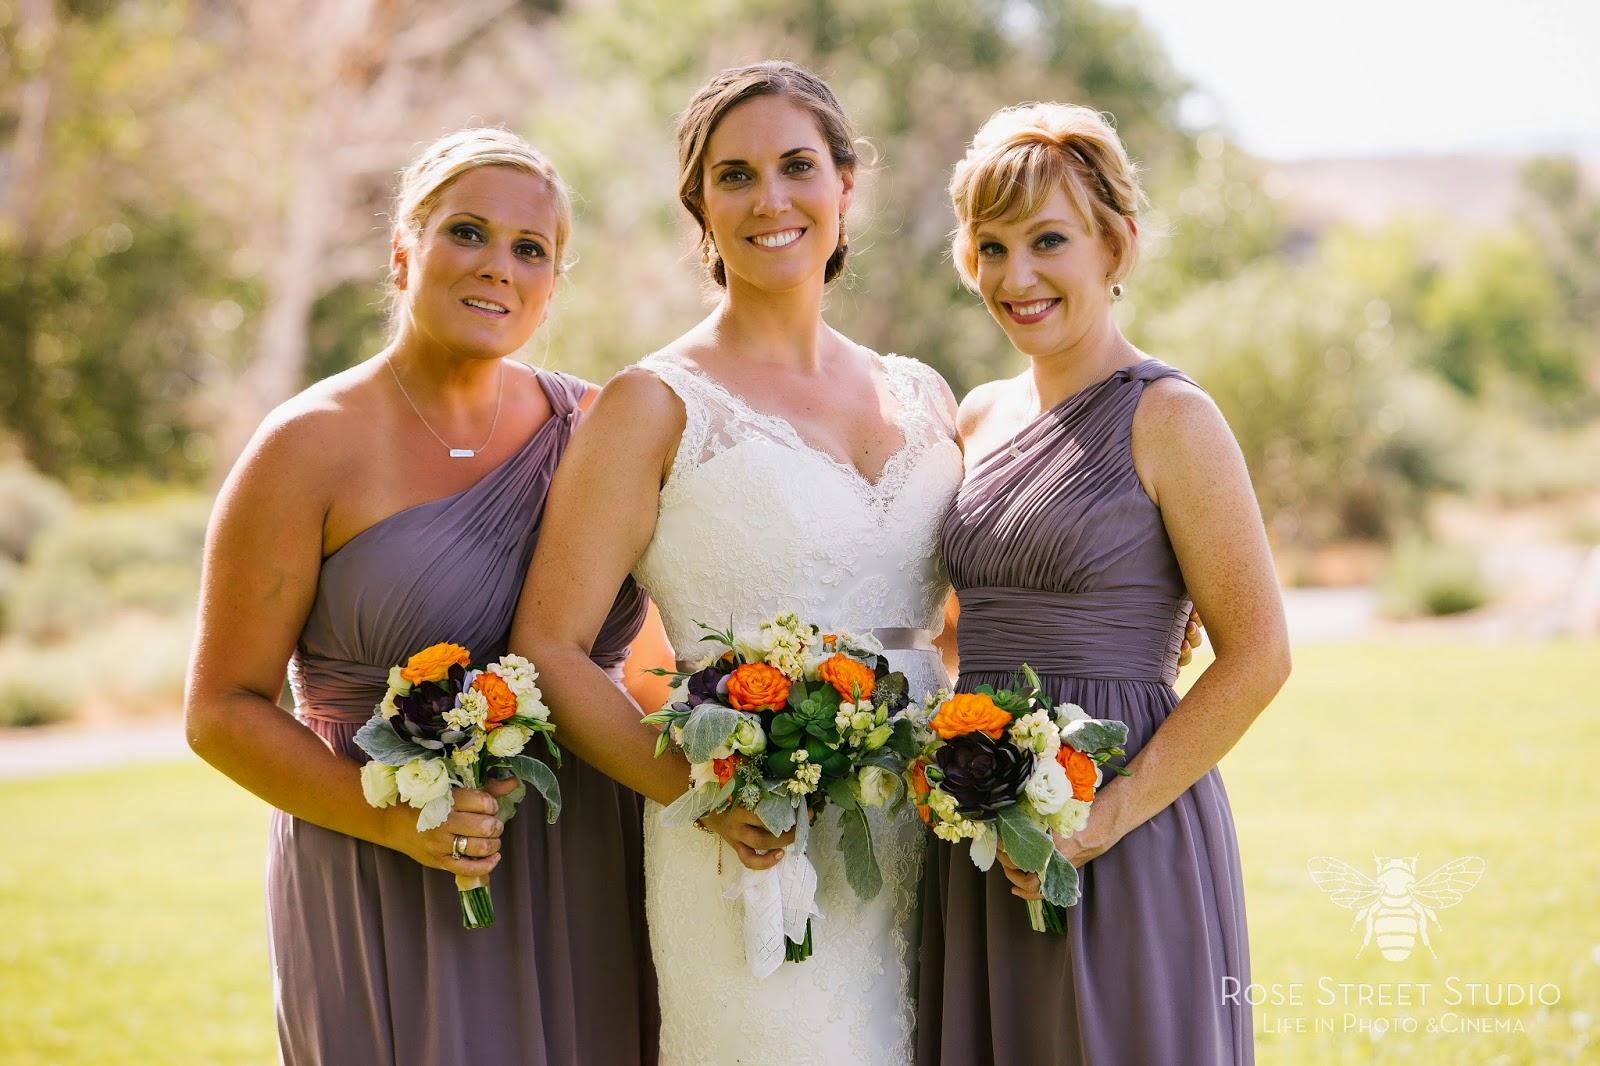 Lavender bridesmaid dresses and bright florals l Rose Street Studio l Take the Cake Event Planning